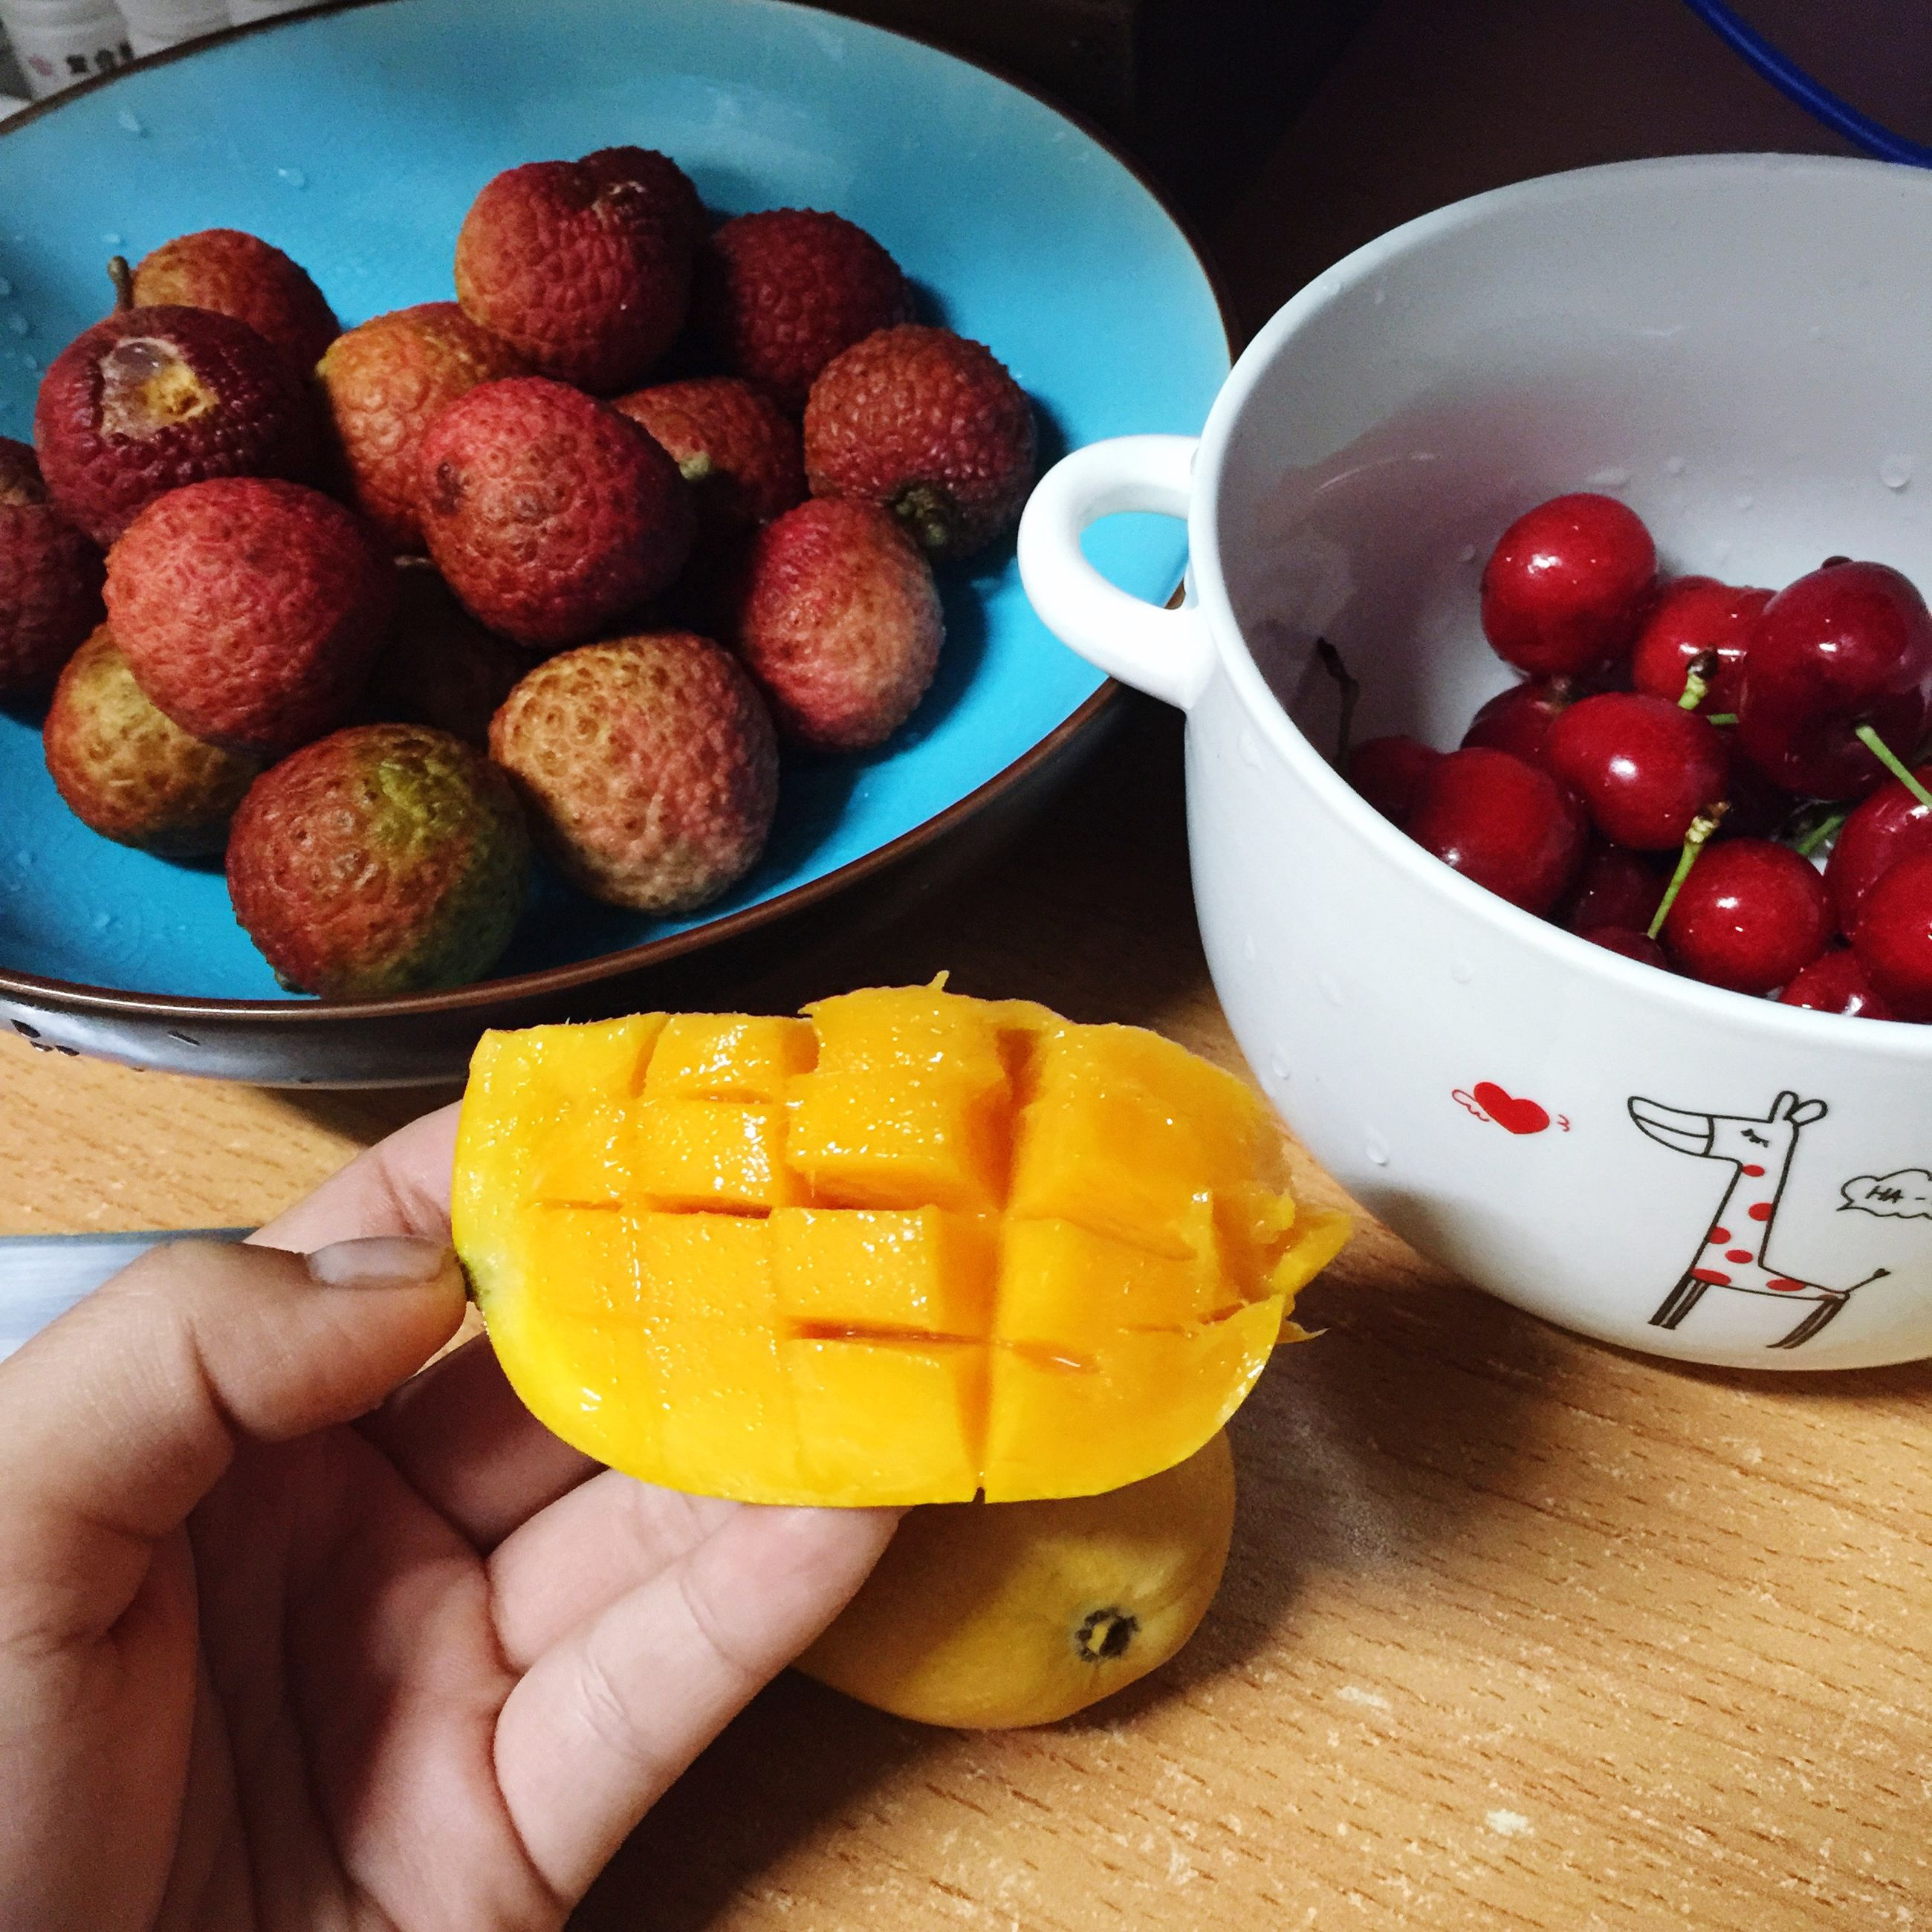 food and drink, food, freshness, person, fruit, holding, healthy eating, cropped, personal perspective, part of, unrecognizable person, lifestyles, indoors, strawberry, ready-to-eat, sweet food, leisure activity